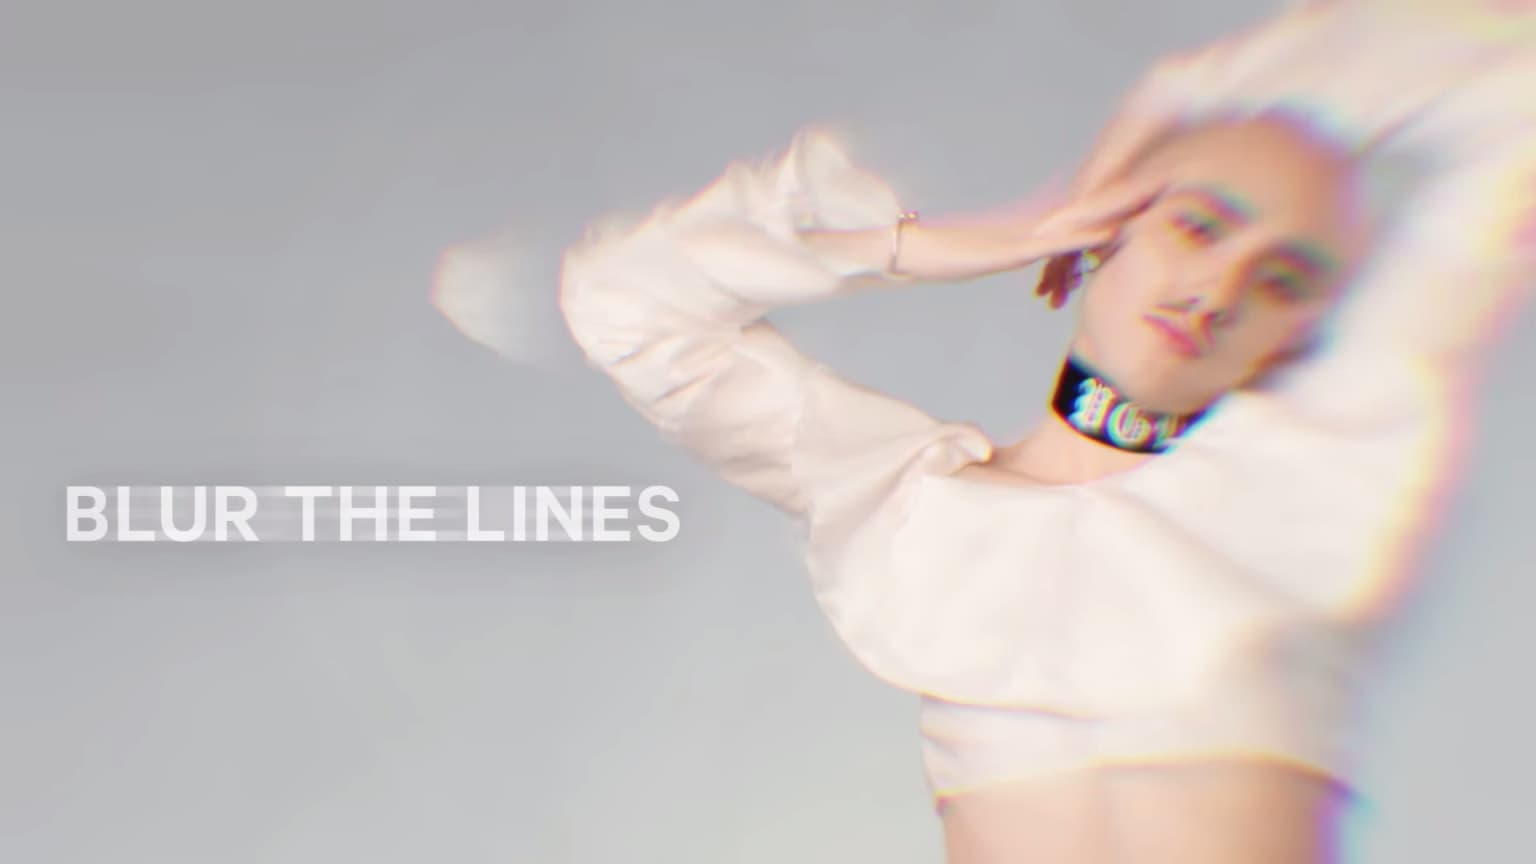 Blur The Lines